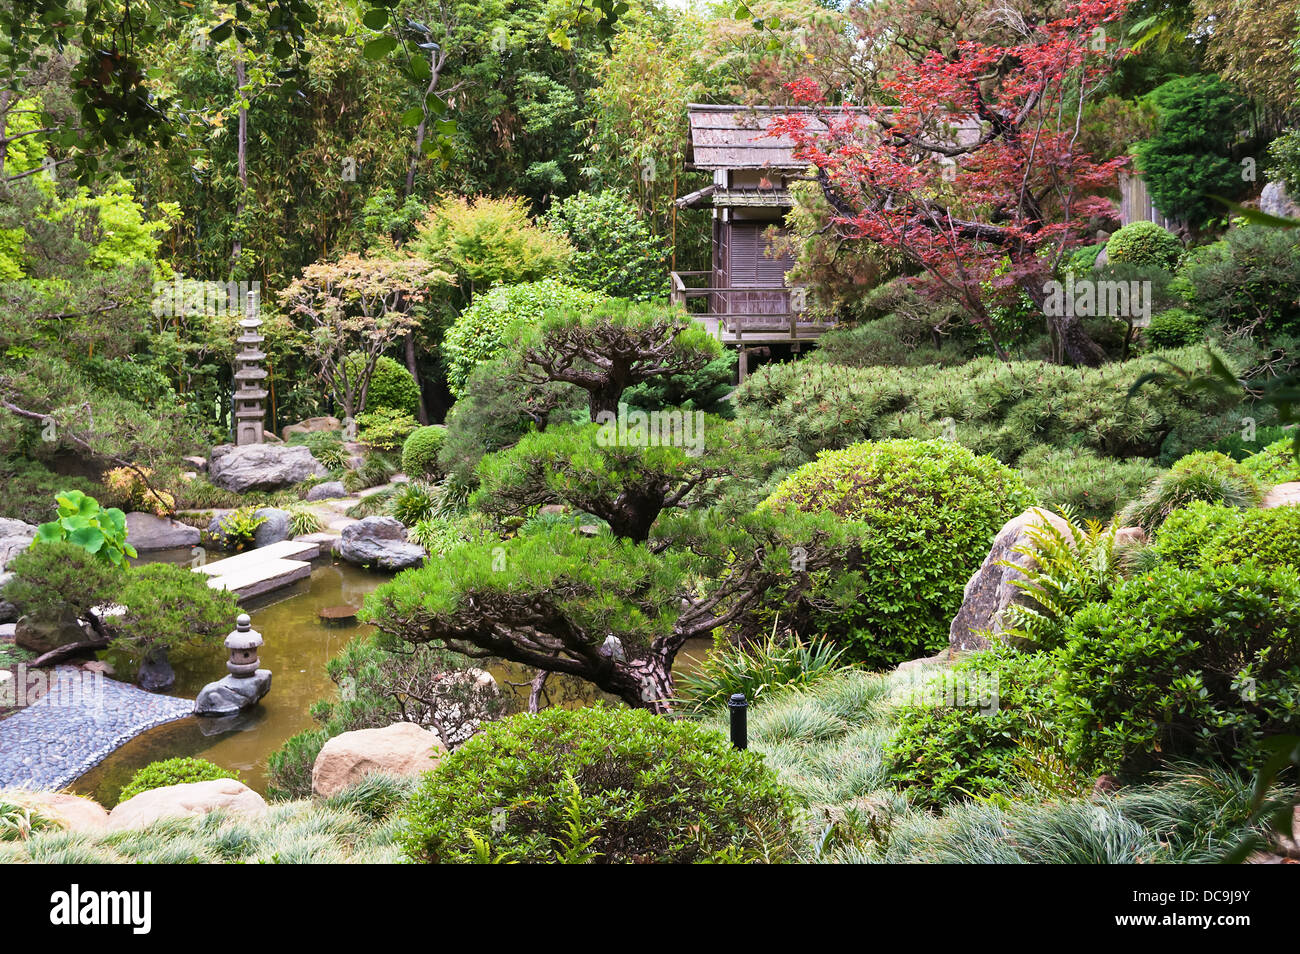 Overview of Hannah Carter Japanese Garden. Currently closed and slated for resale or demolition. - Stock Image